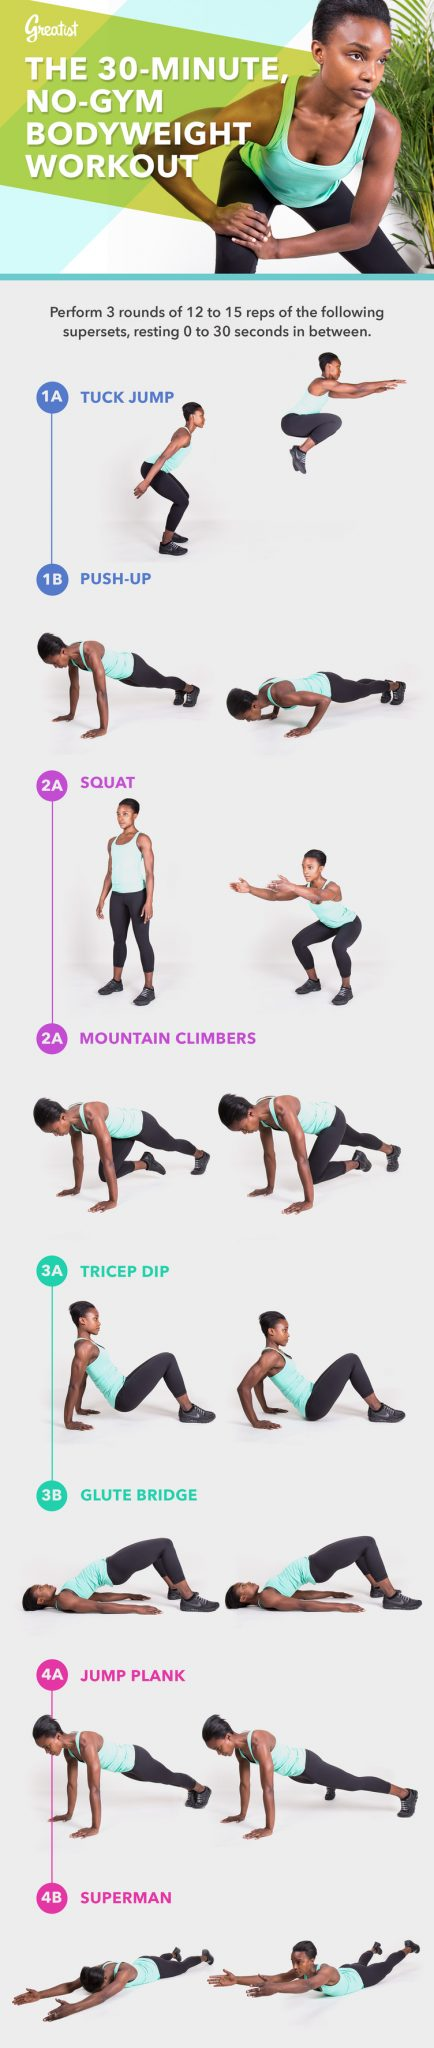 home-bodyweight-workout_0 (1)